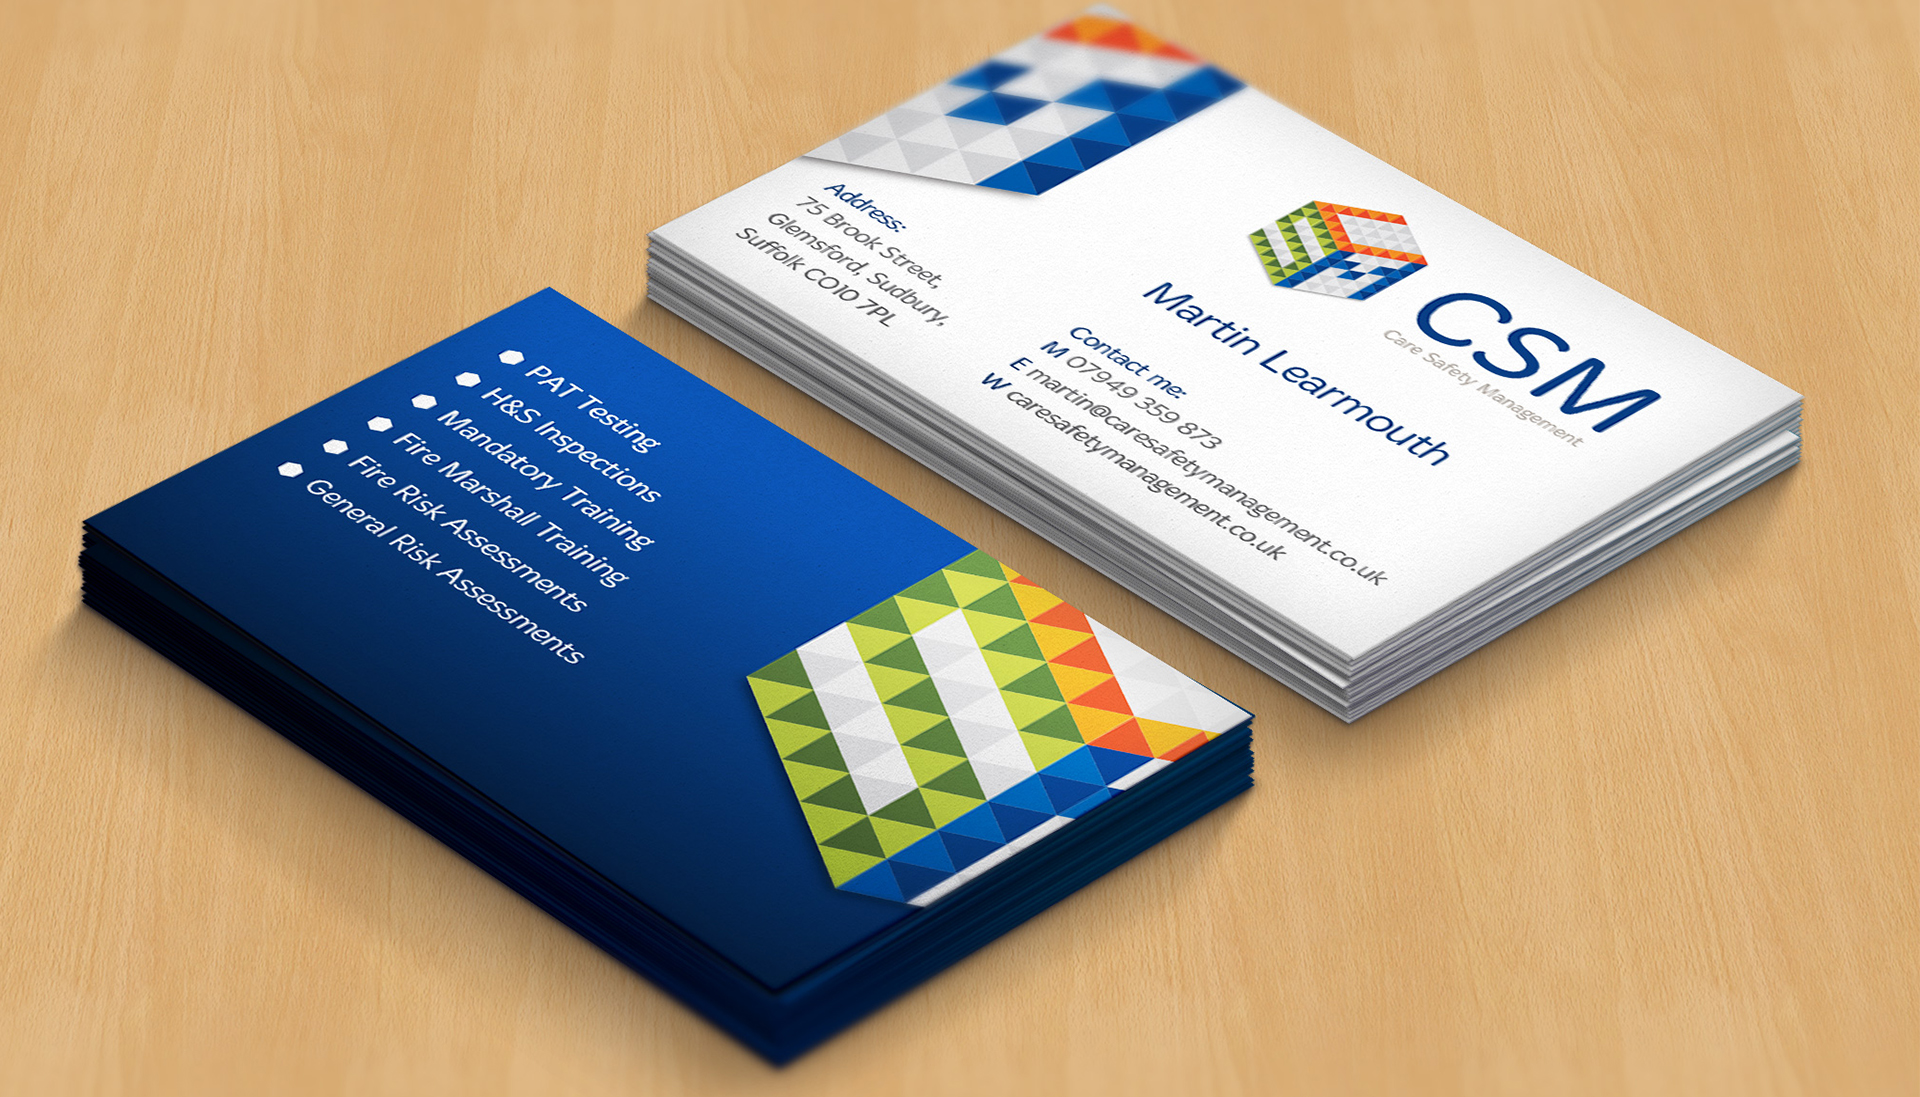 Are you getting some new business cards designed and printed?